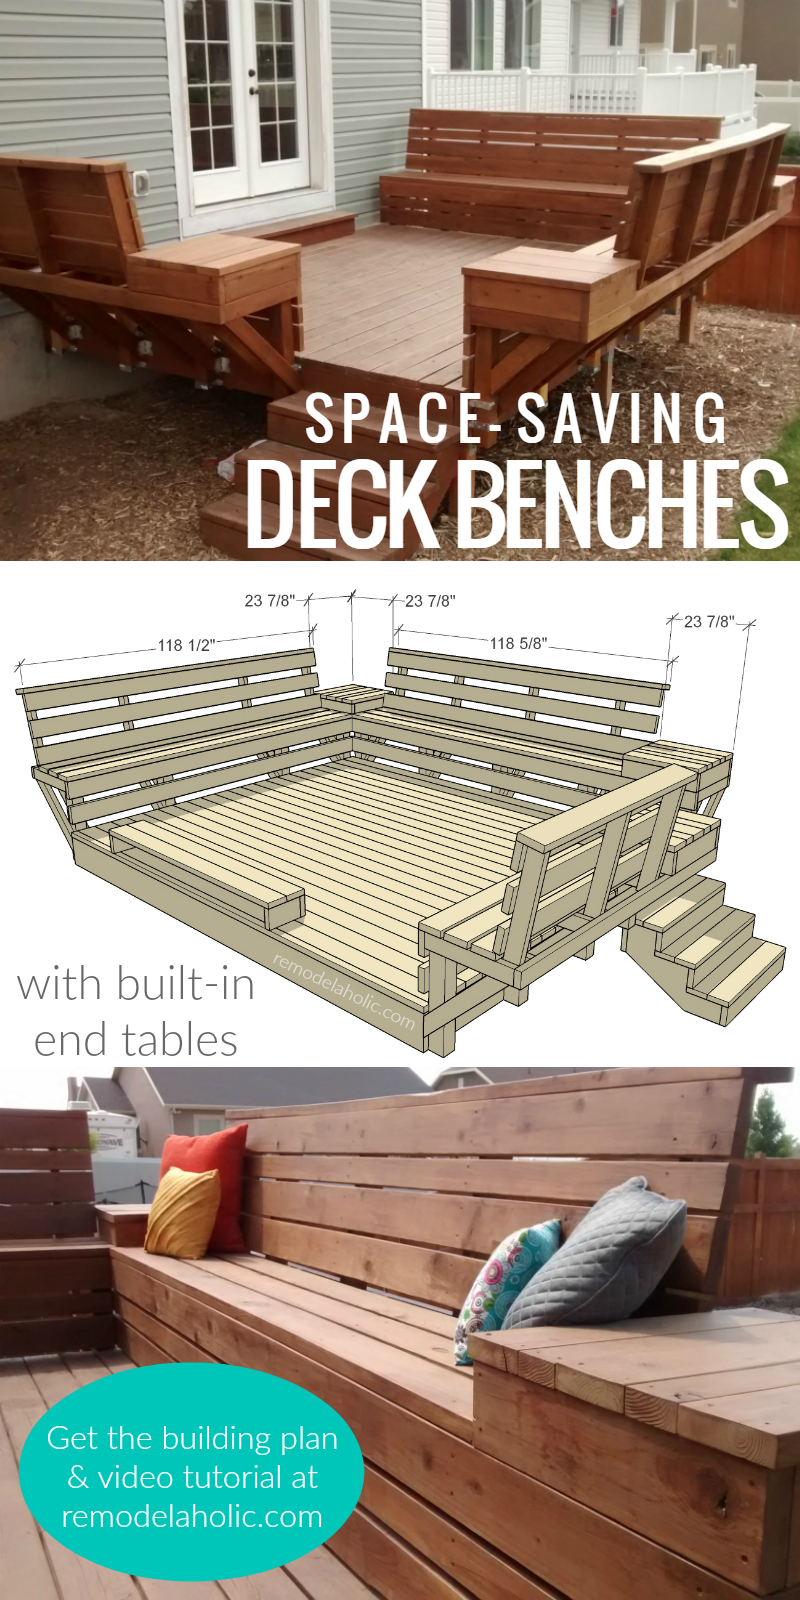 Remodelaholic how to build space saving deck benches for for Deck plans online